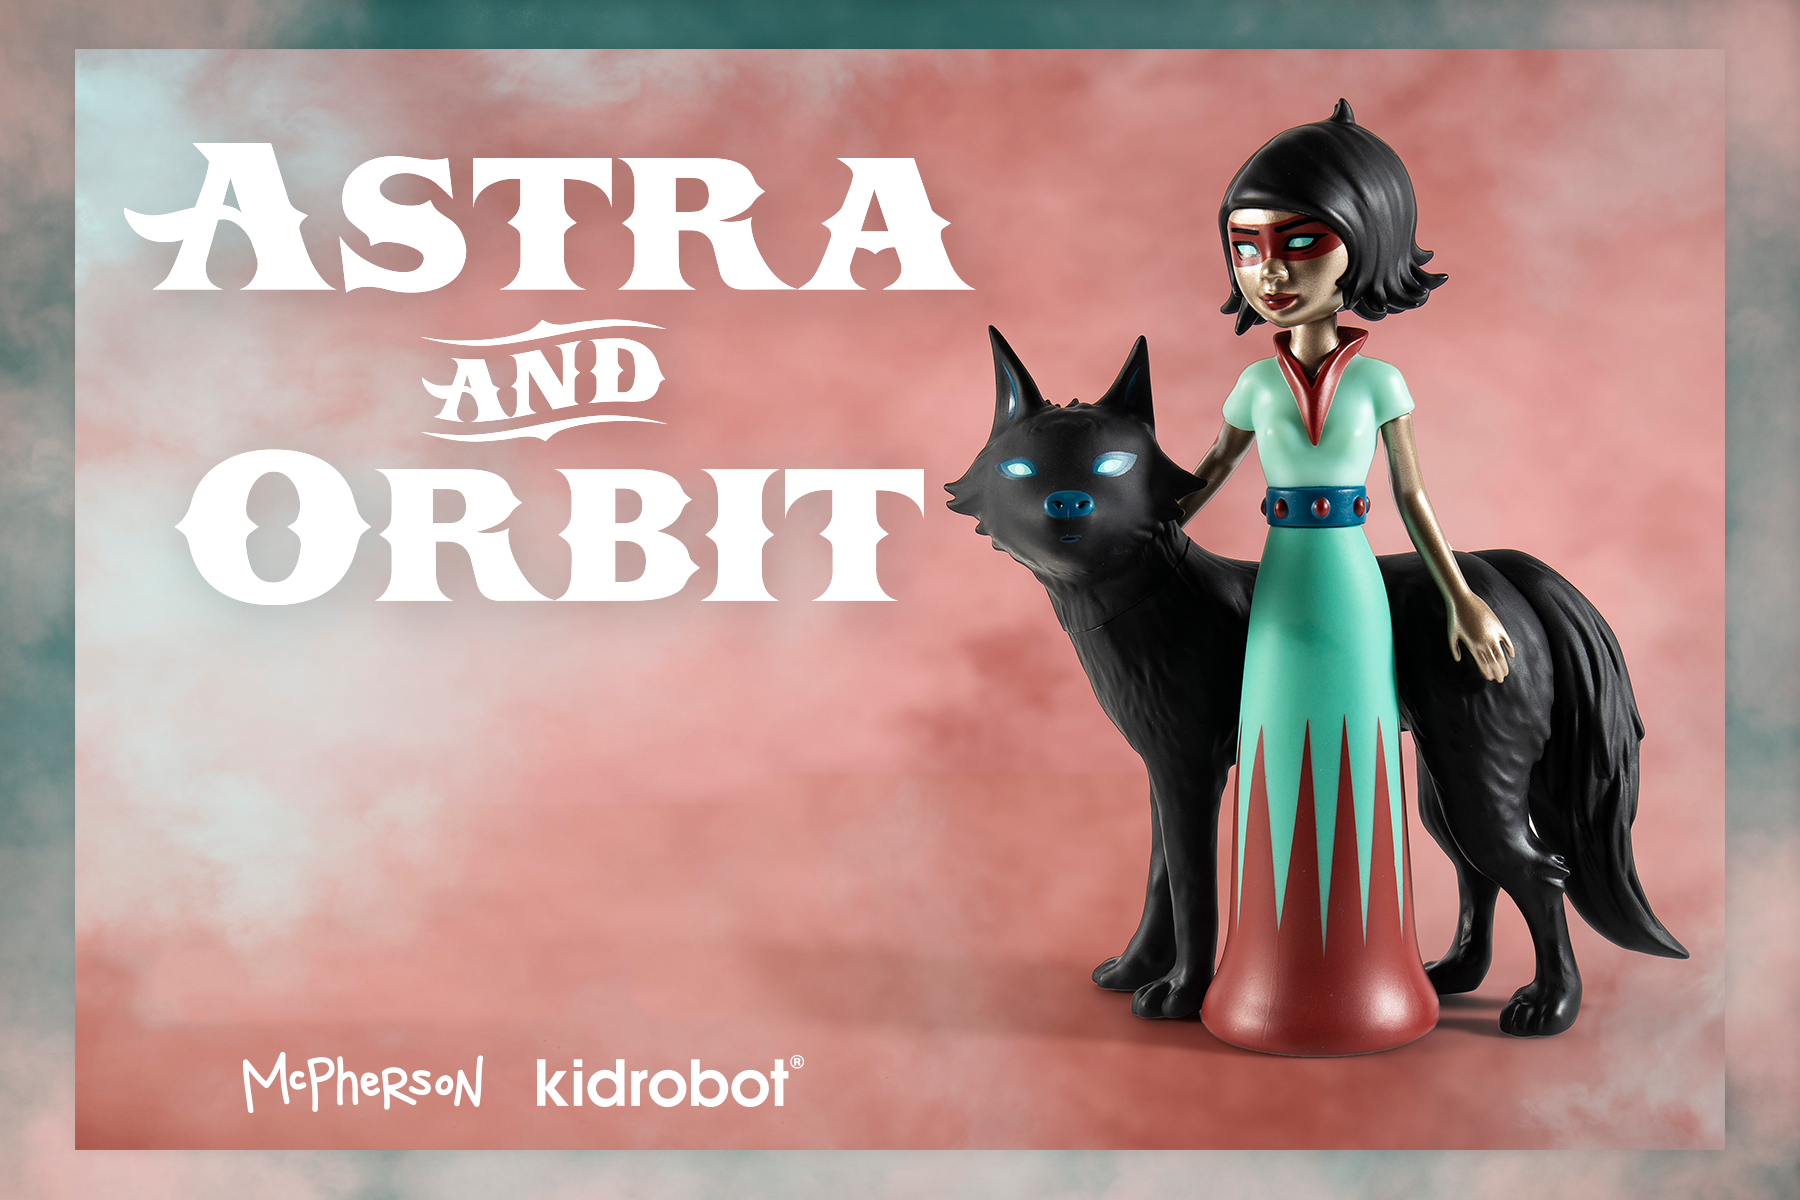 TaraMcPherson_Astra&Orbit_Announcement_HighRes_02_1800x1200